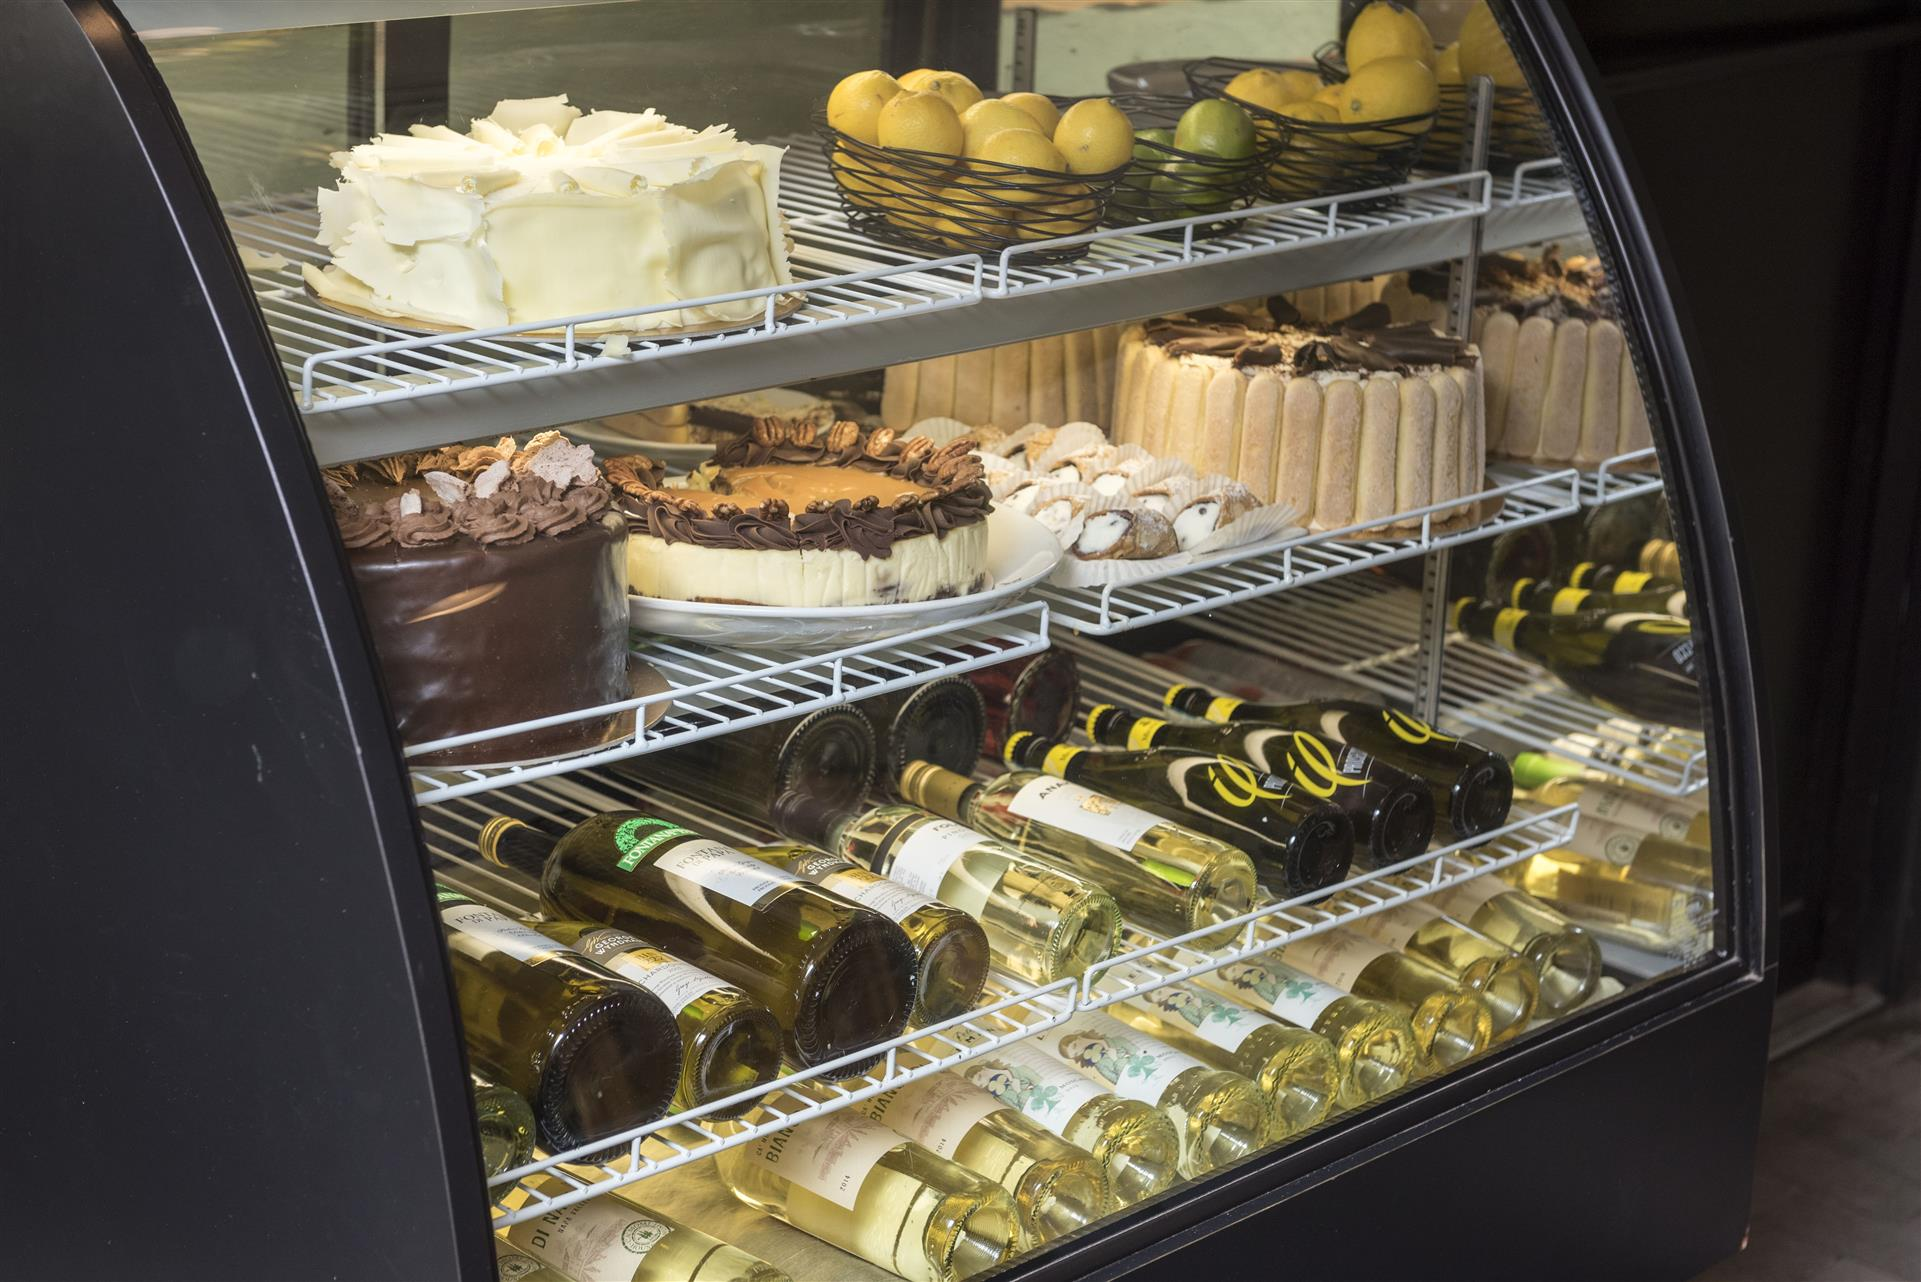 Assortment of Desserts and Wine stored in a fridge